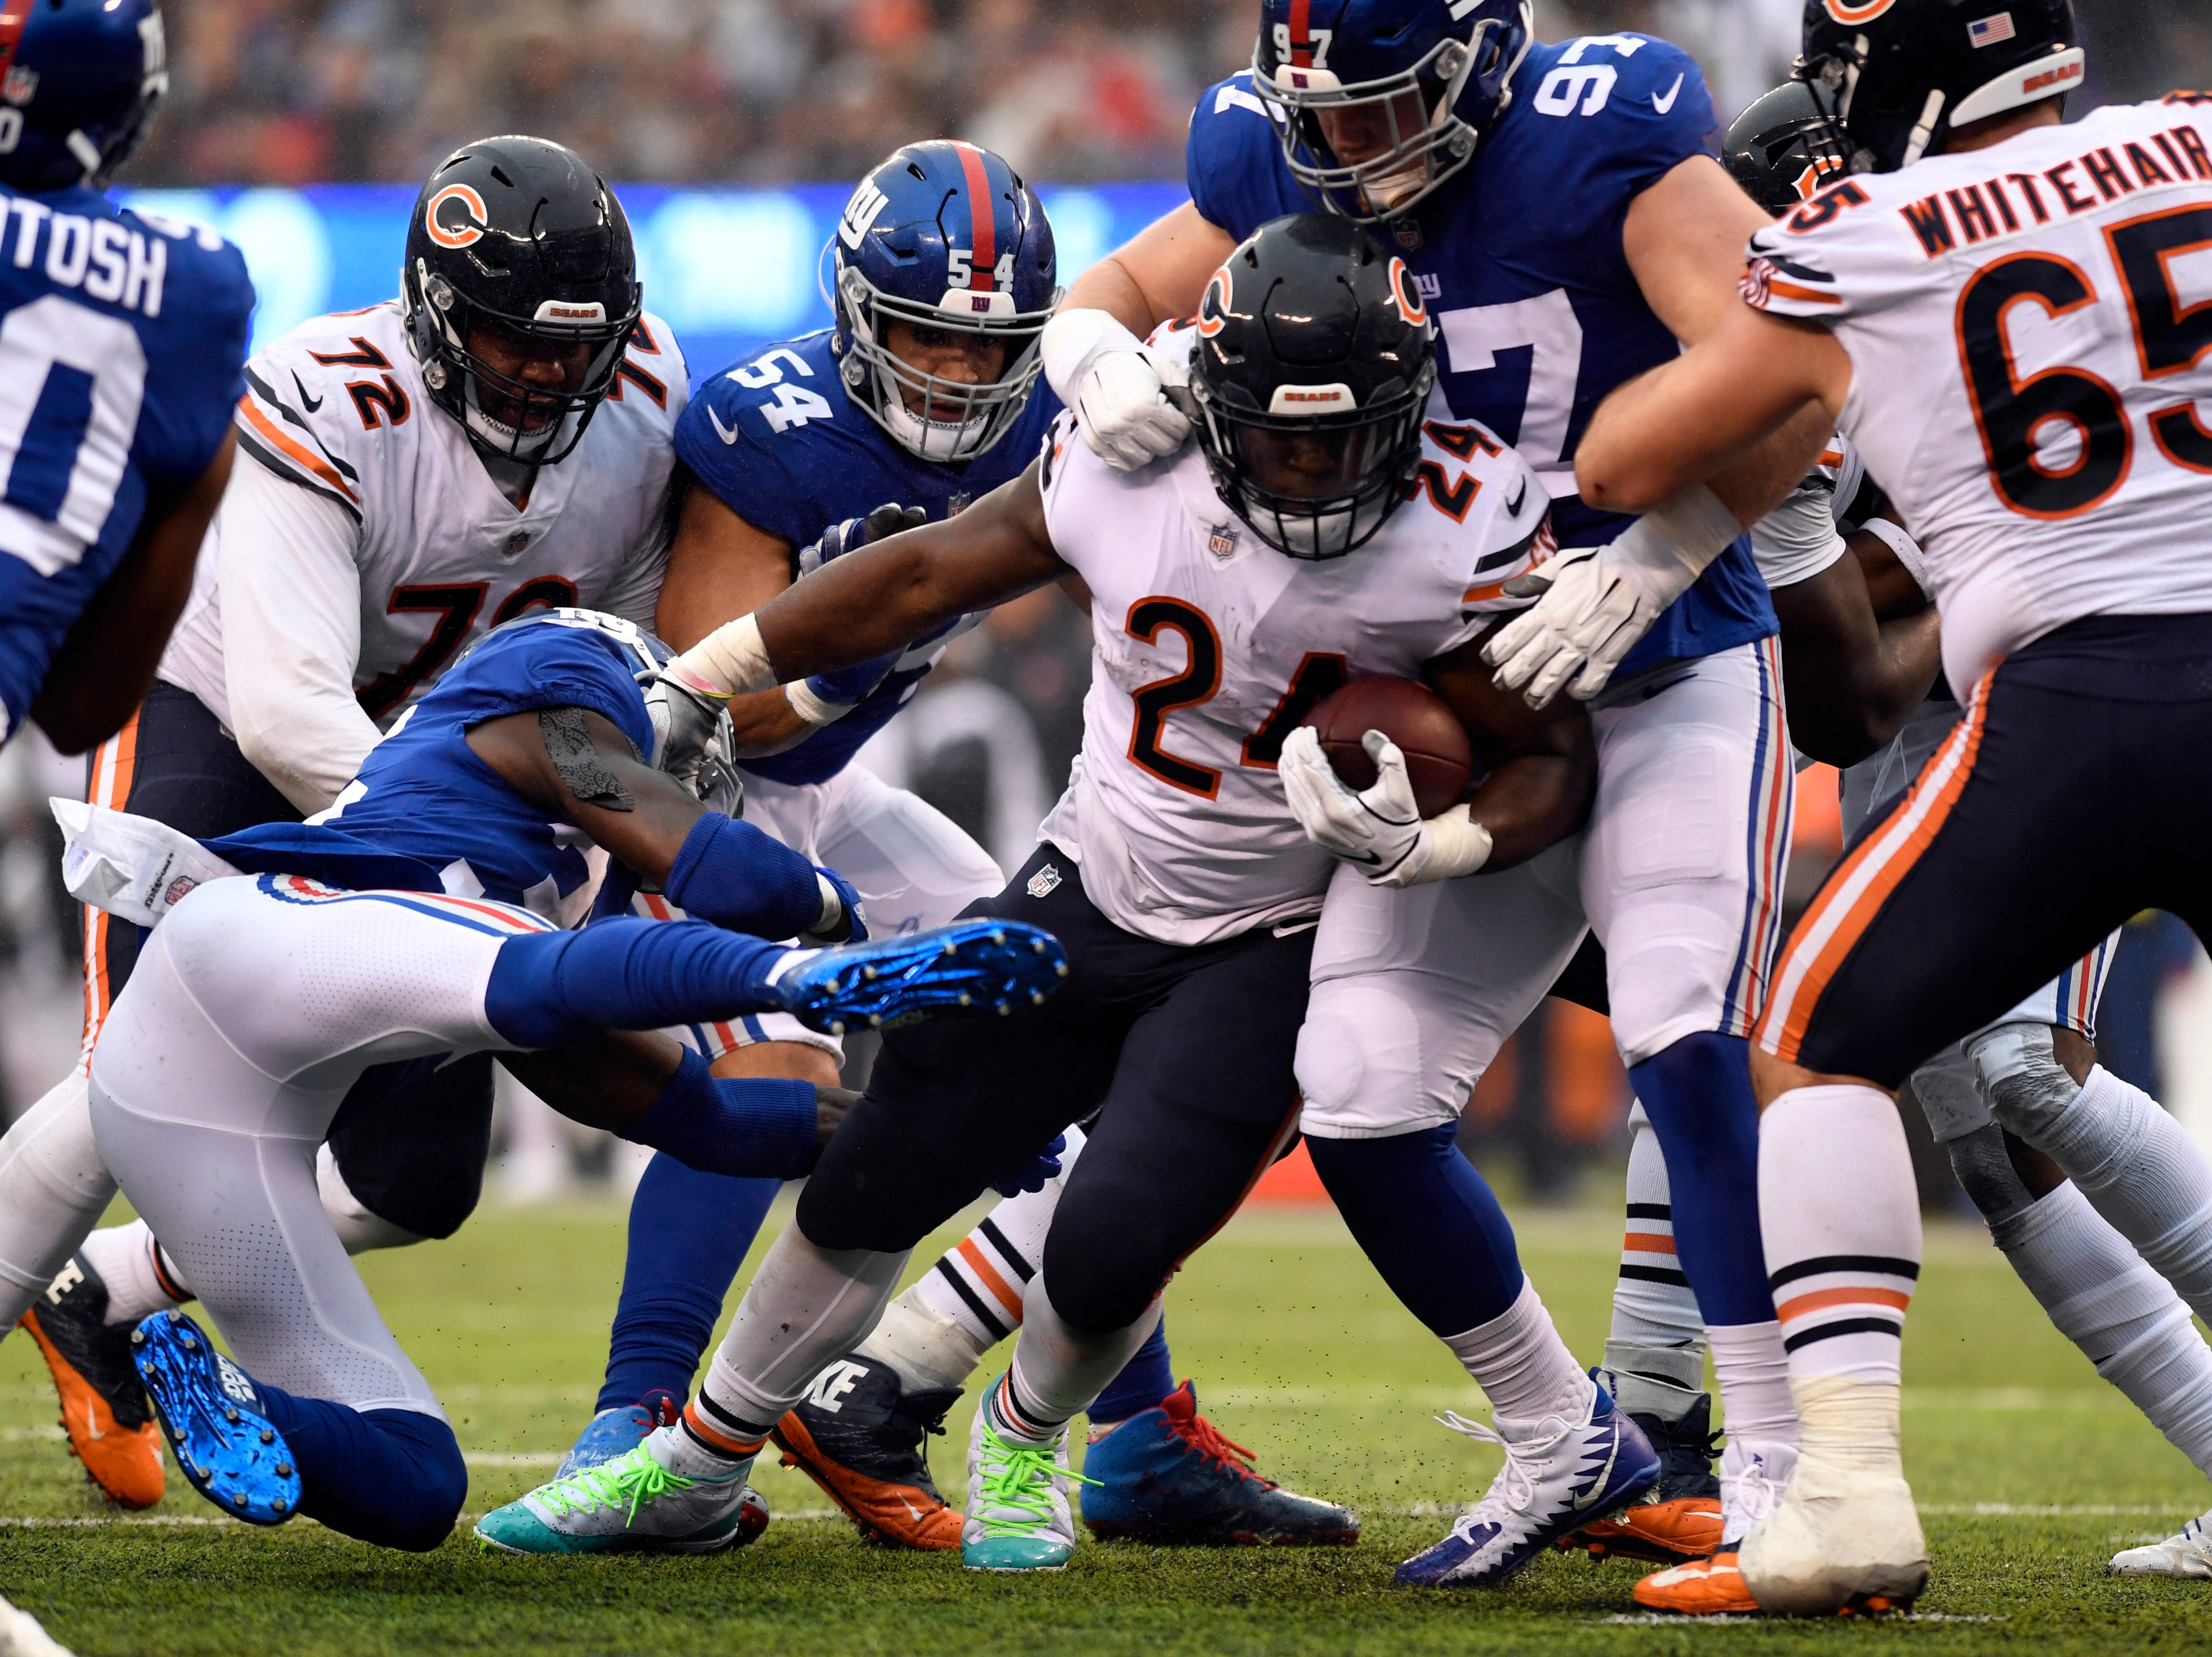 Chicago Bears running back Jordan Howard (24) is stopped short of a touchdown in the first half. The New York Giants face the Chicago Bears on Sunday, Dec. 2, 2018, in East Rutherford.